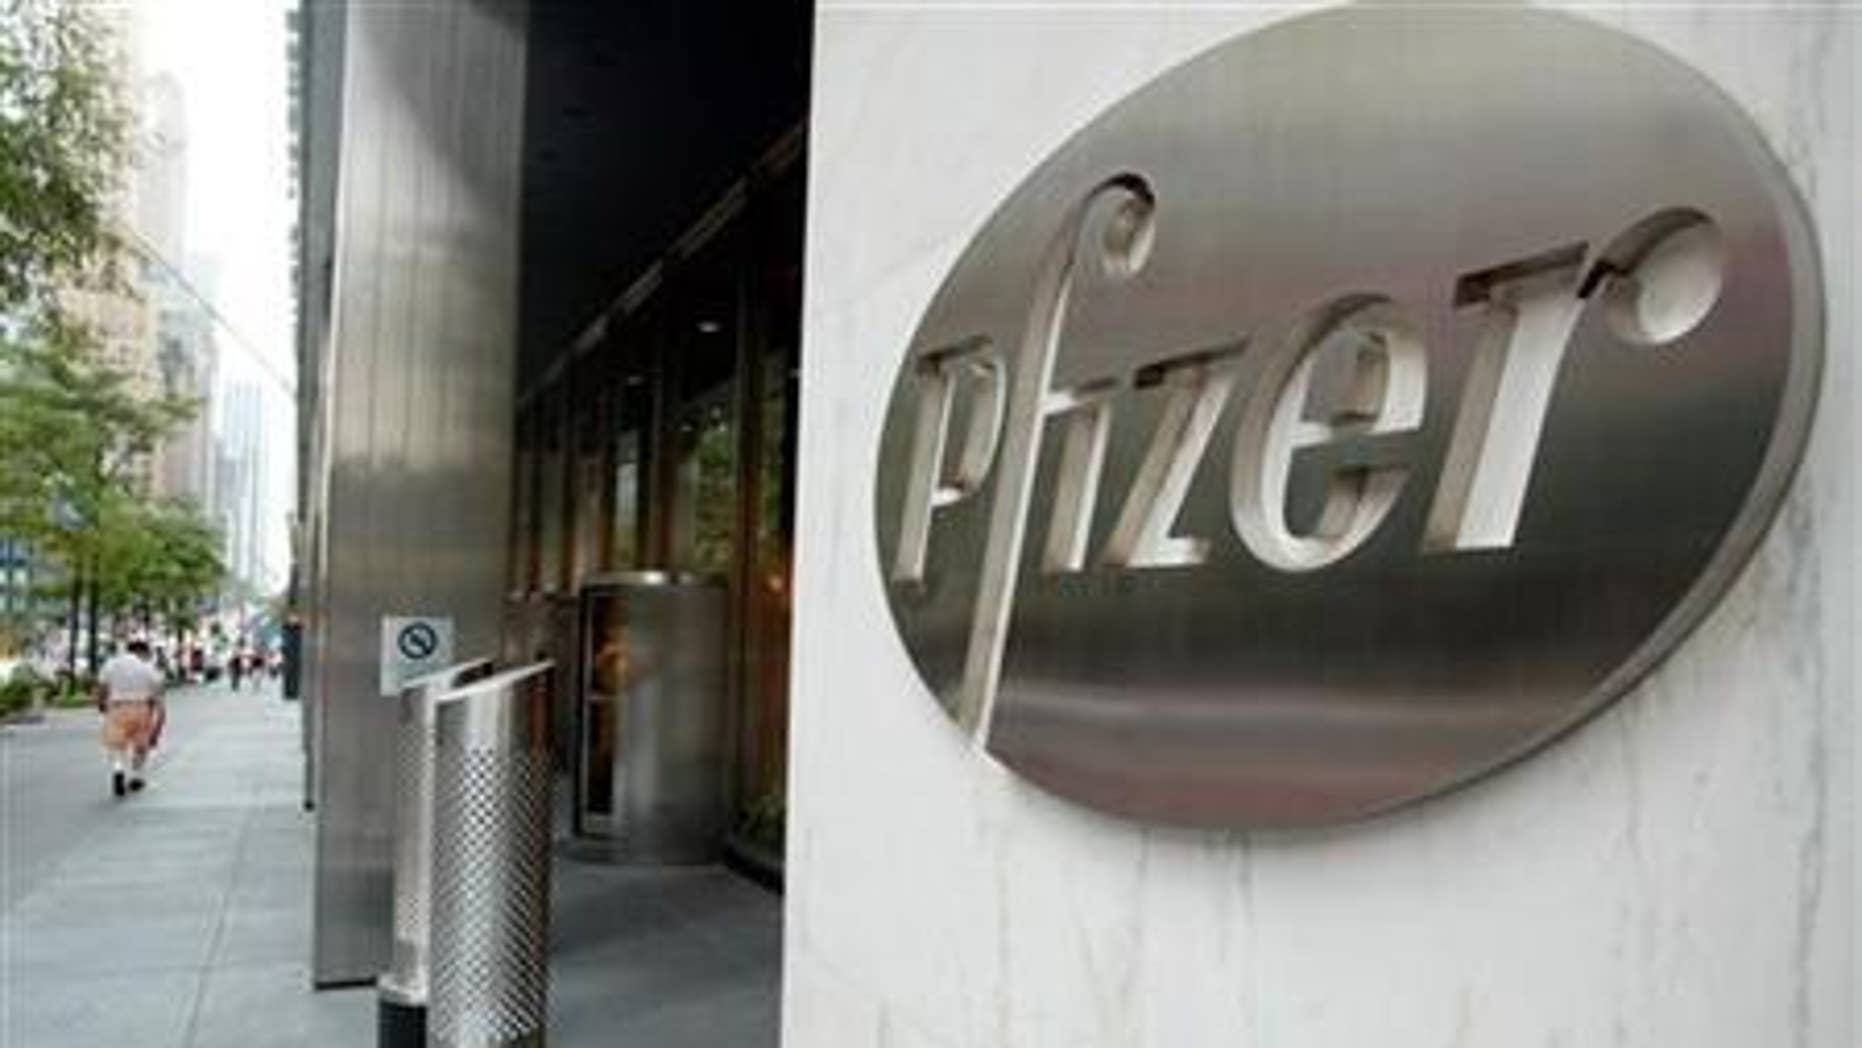 The entrance of Pfizer World headquaters in New York City, August 31, 2003. REUTERS/Jeff Christensen